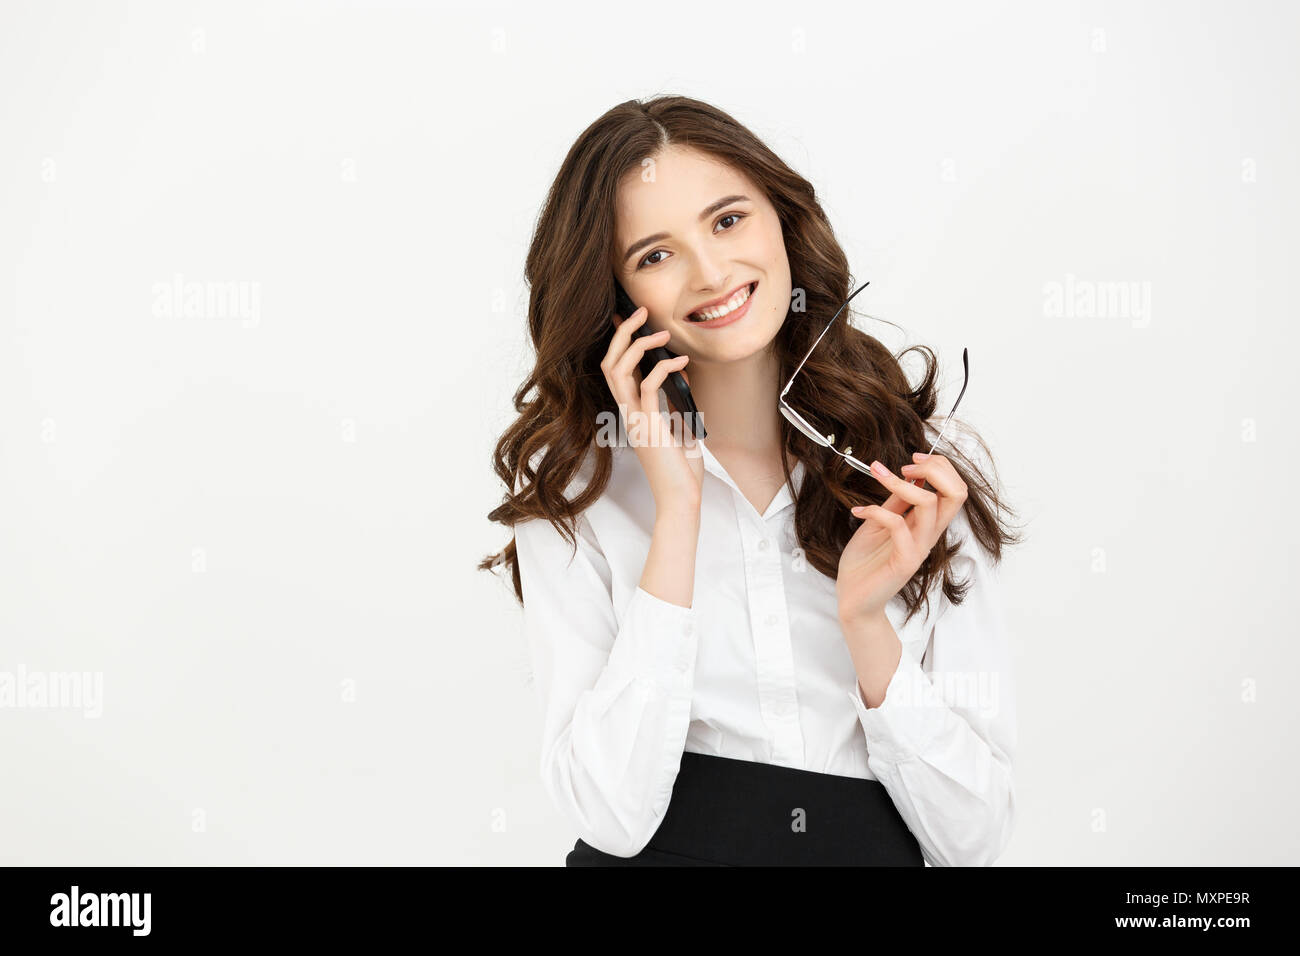 Thoughtful female student talking on mobile phone. Attractive business woman thinking about something during using cellphone. - Stock Image